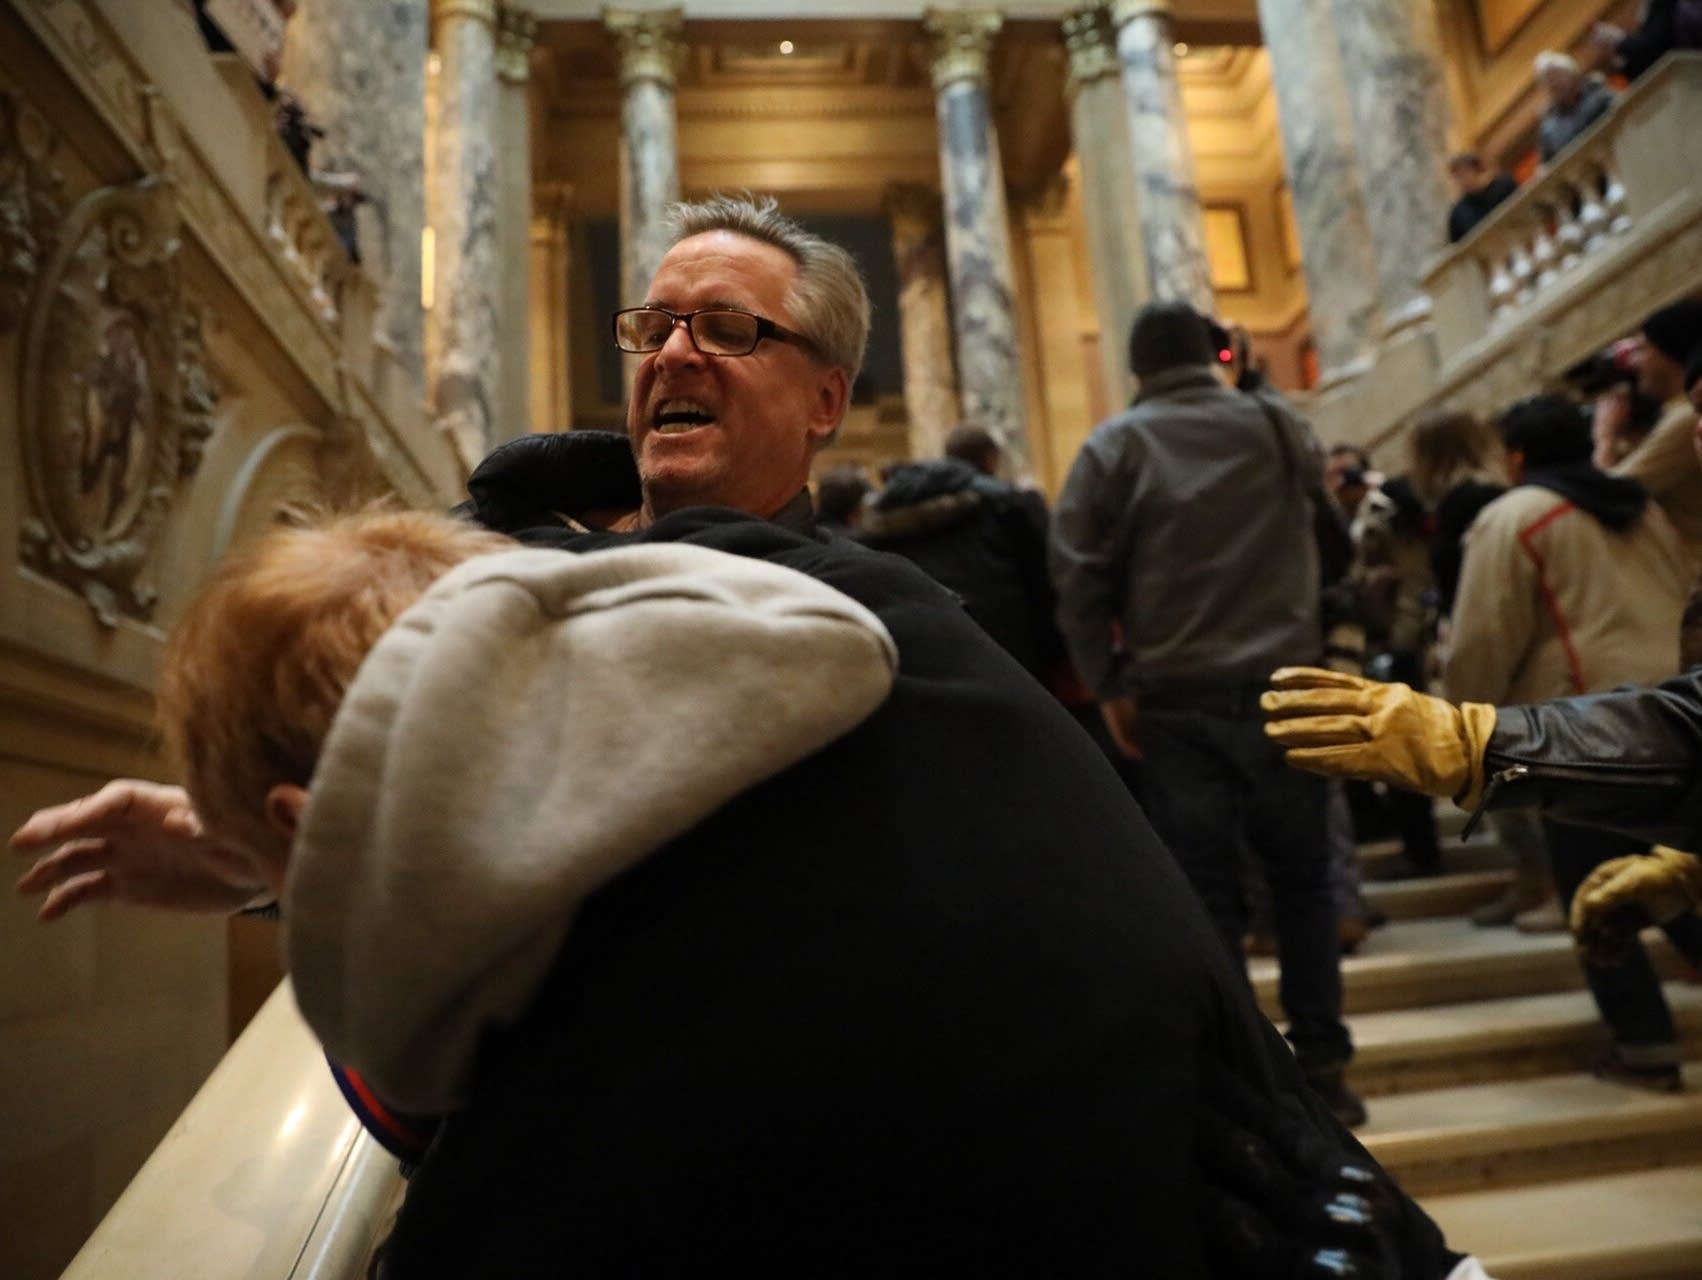 Supporters of President Trump and protesters clashed at the Capitol.